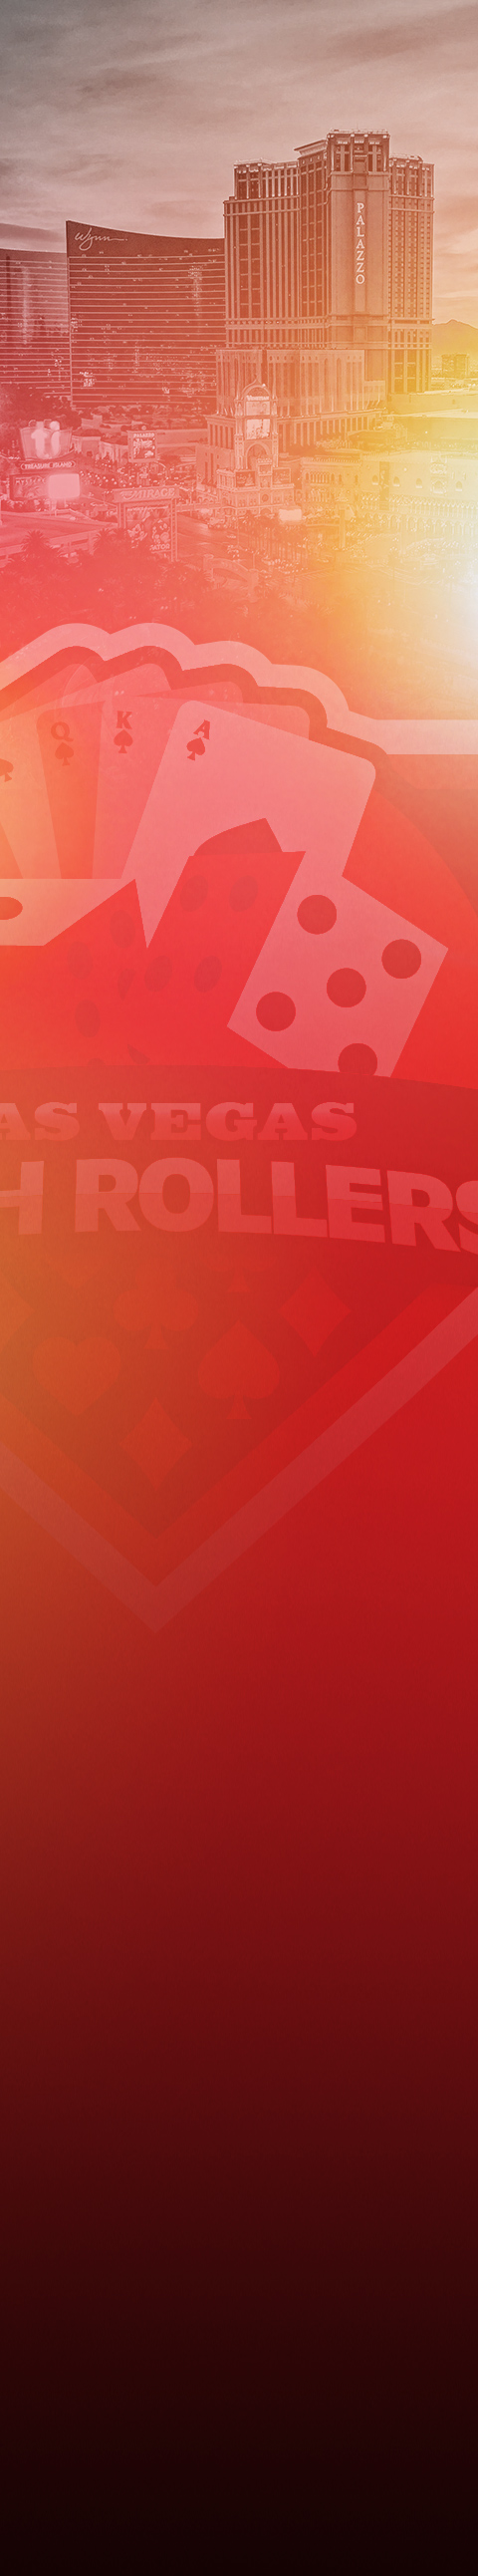 high rollers background